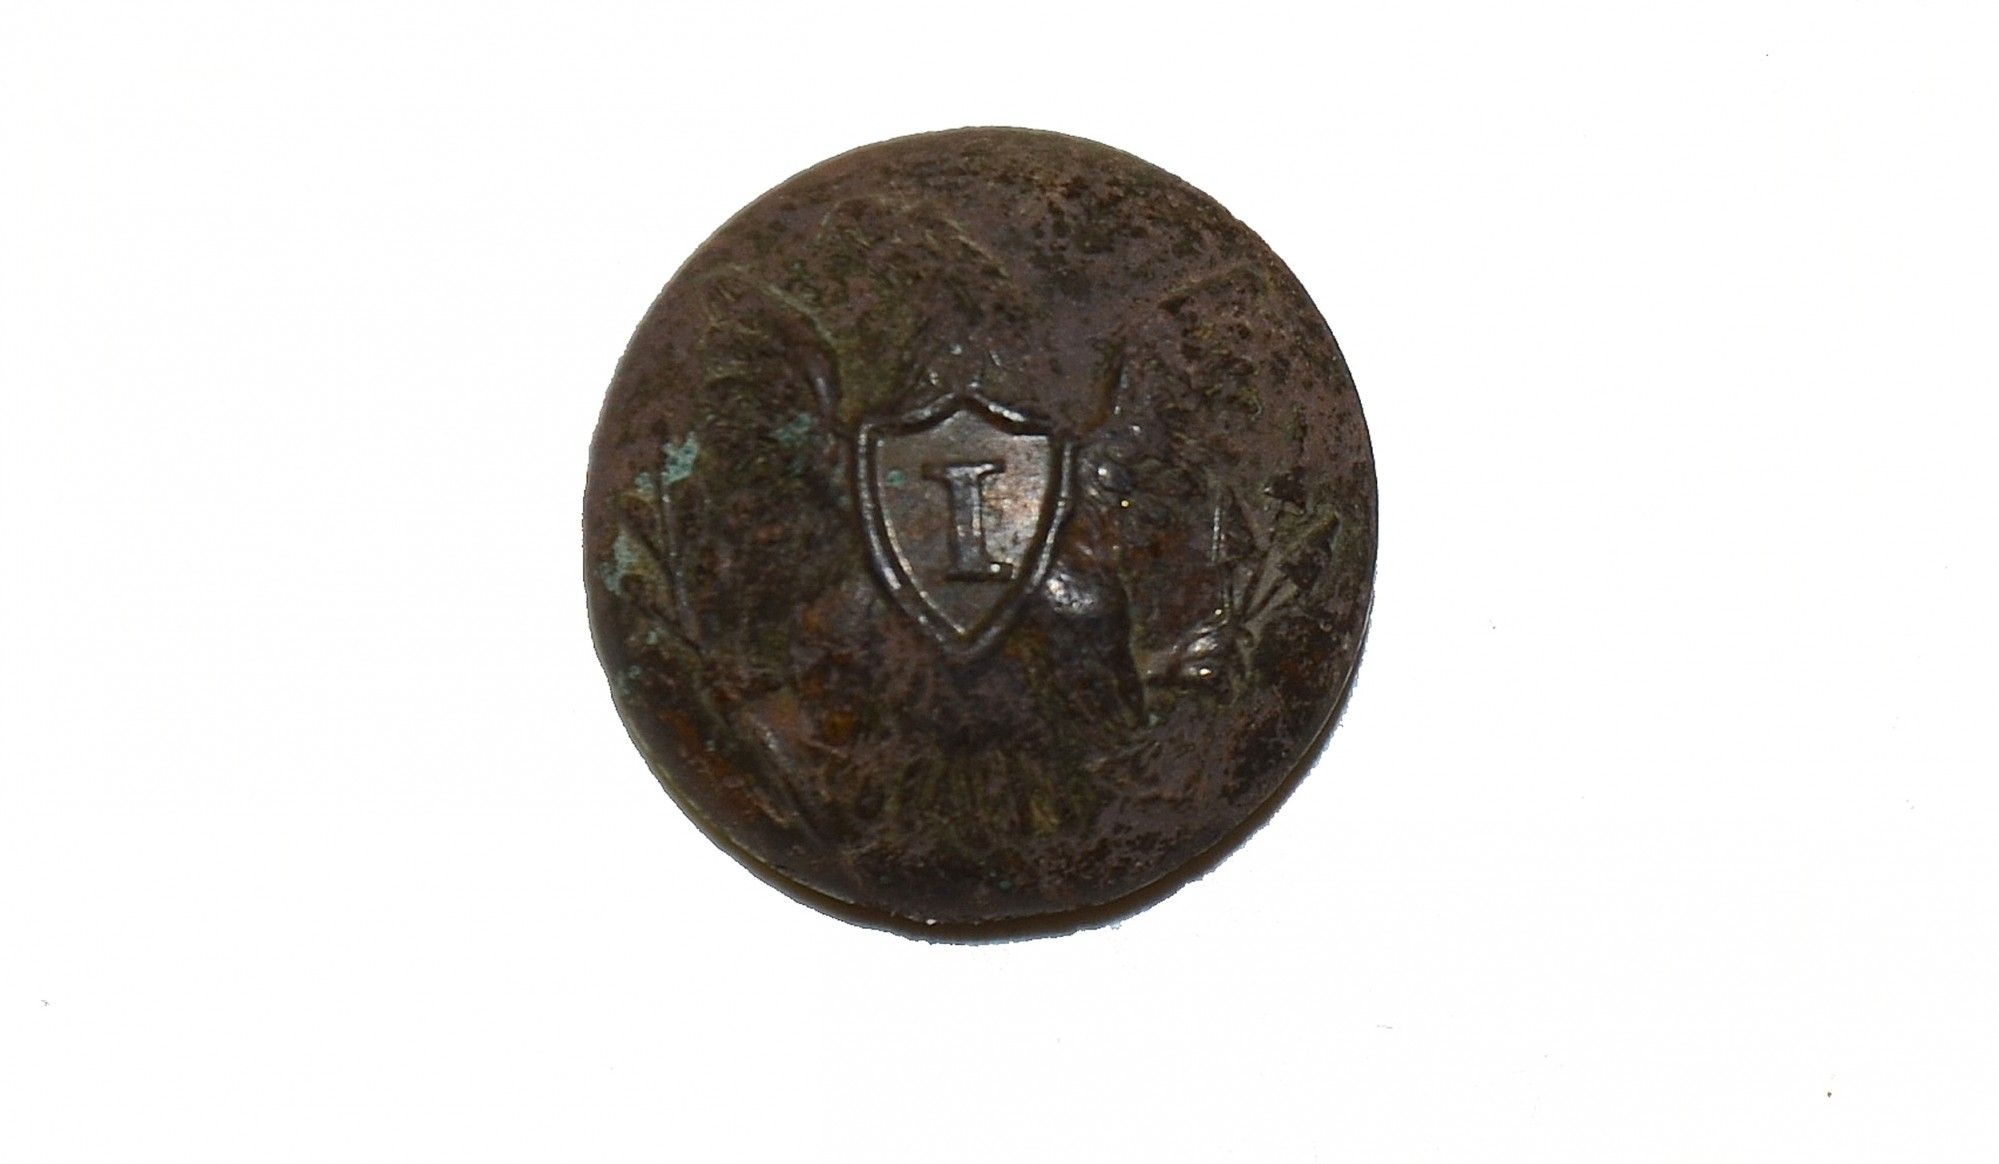 UNION OFFICER'S EAGLE I CUFF BUTTON